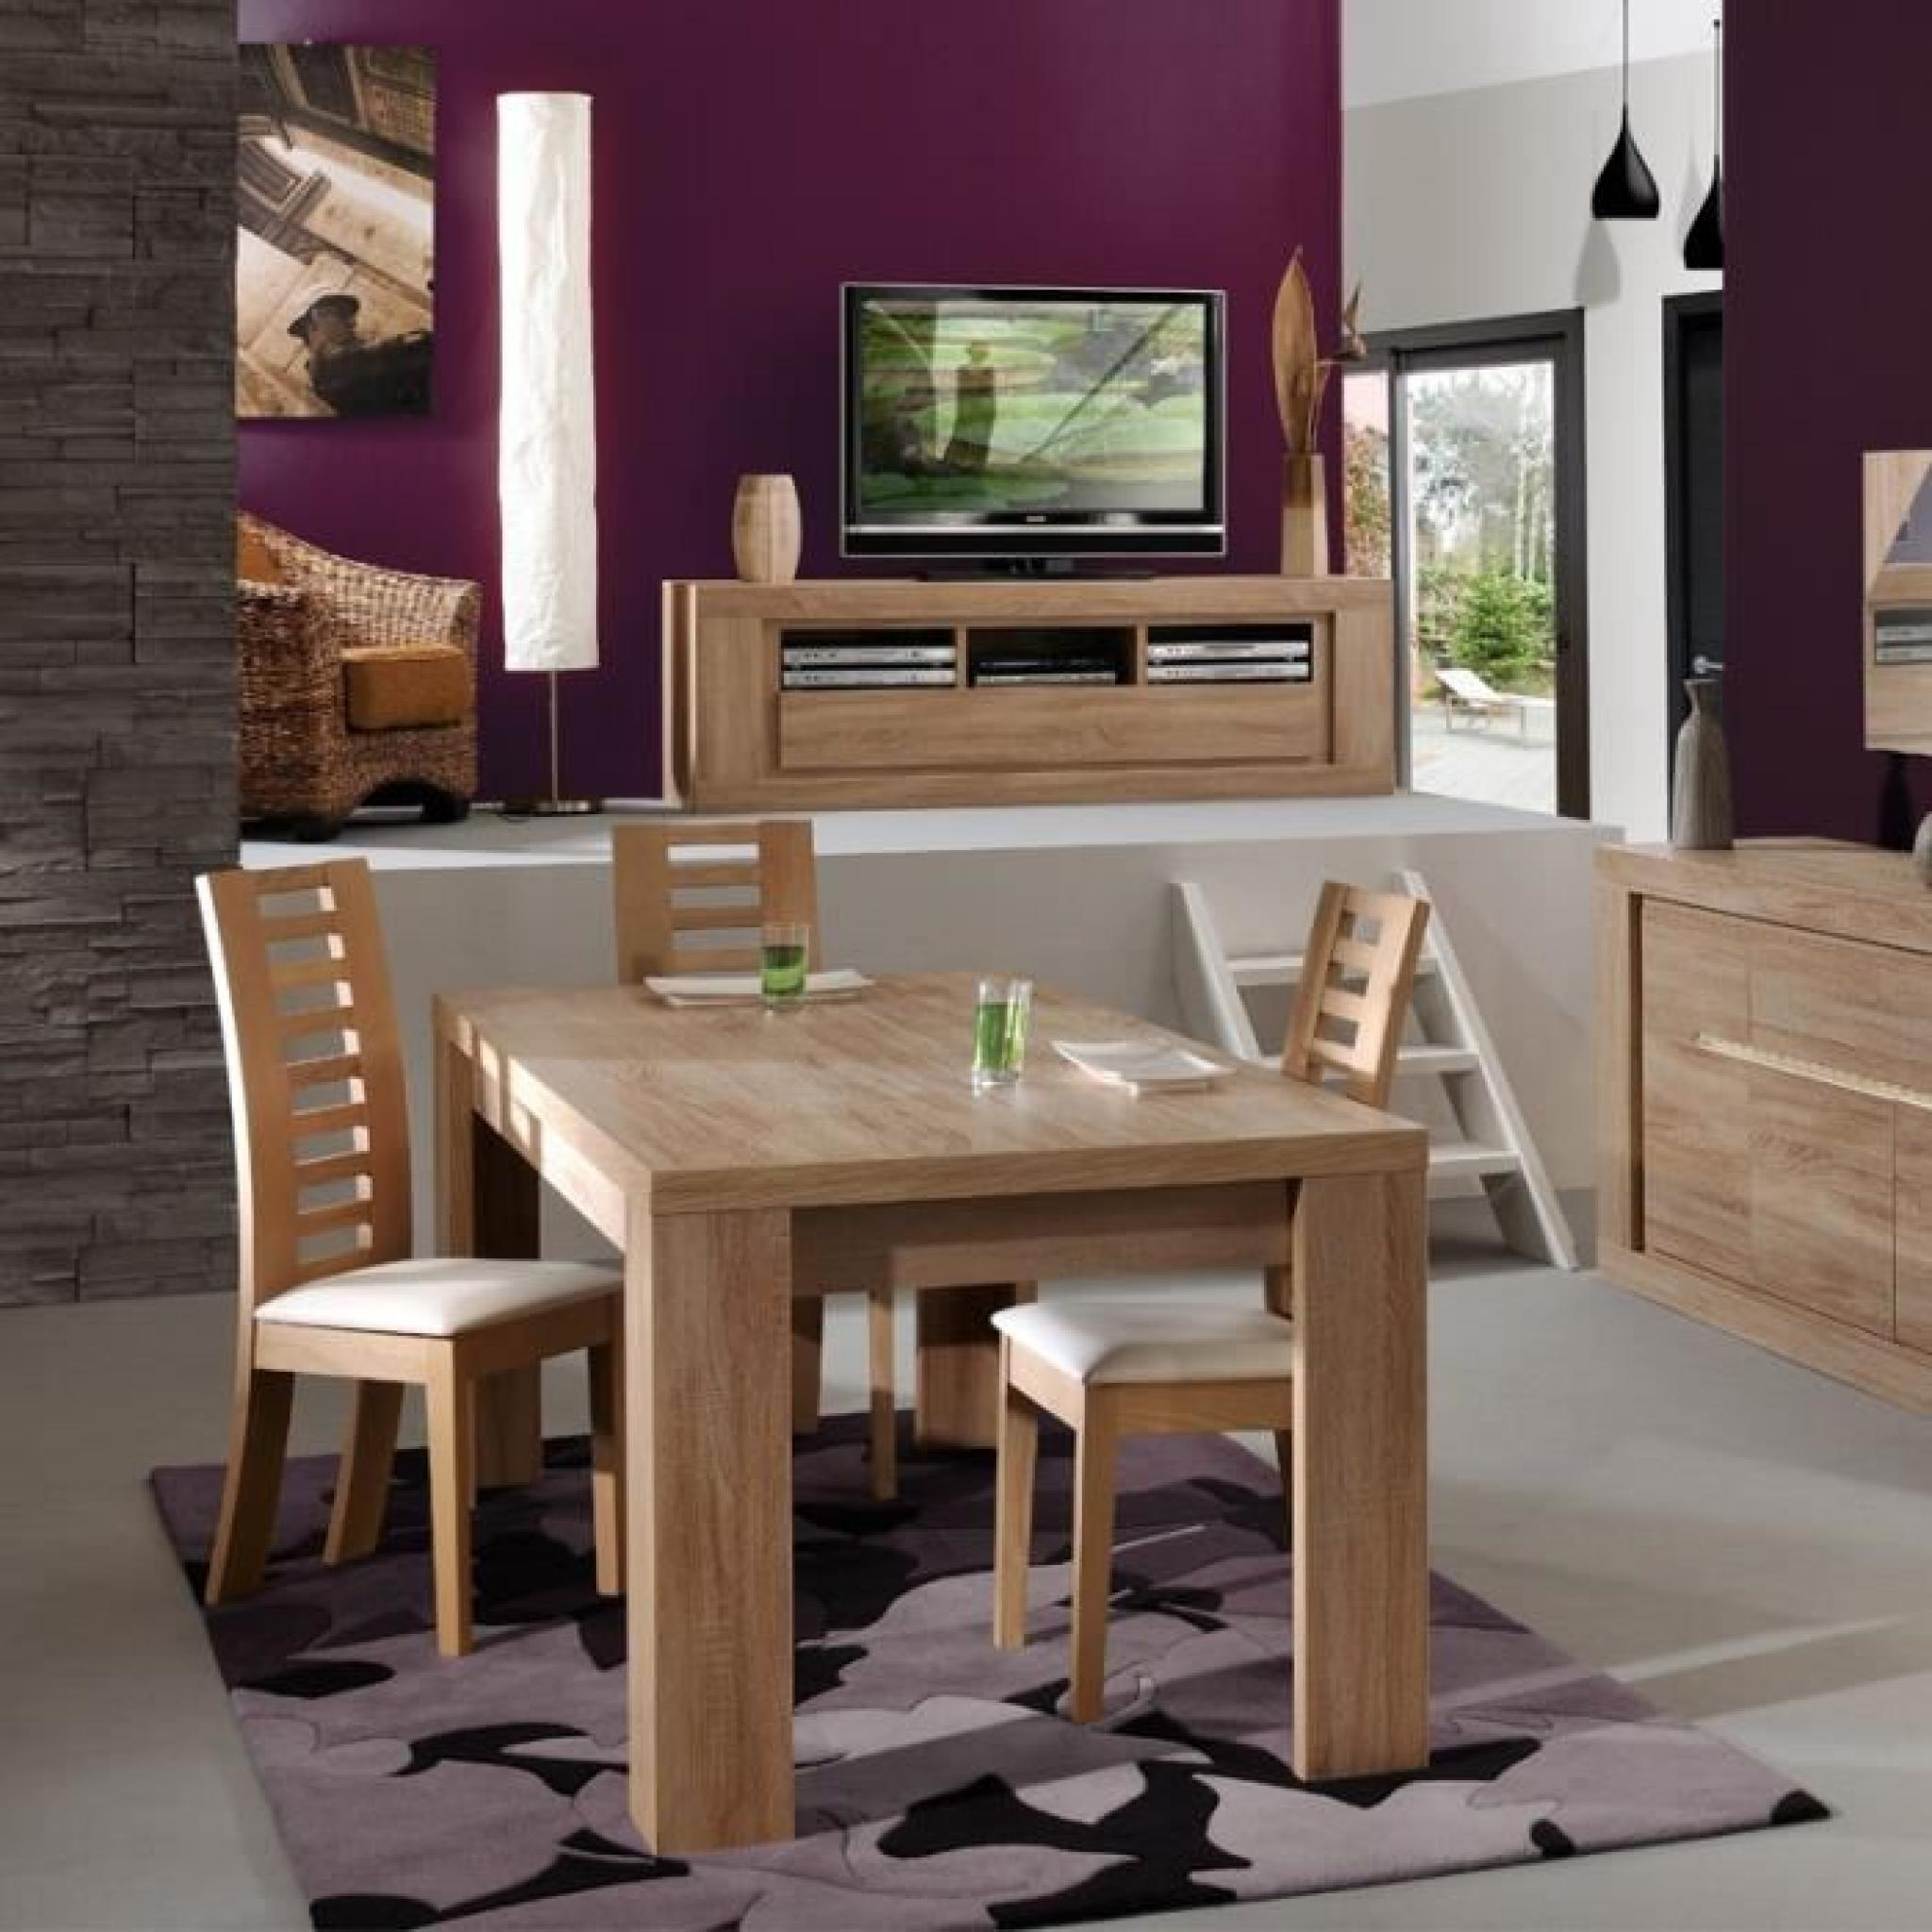 table de repas plateau bois h tre clair 1 allonge luson l 180 230 x l 95 x h 79 cm. Black Bedroom Furniture Sets. Home Design Ideas